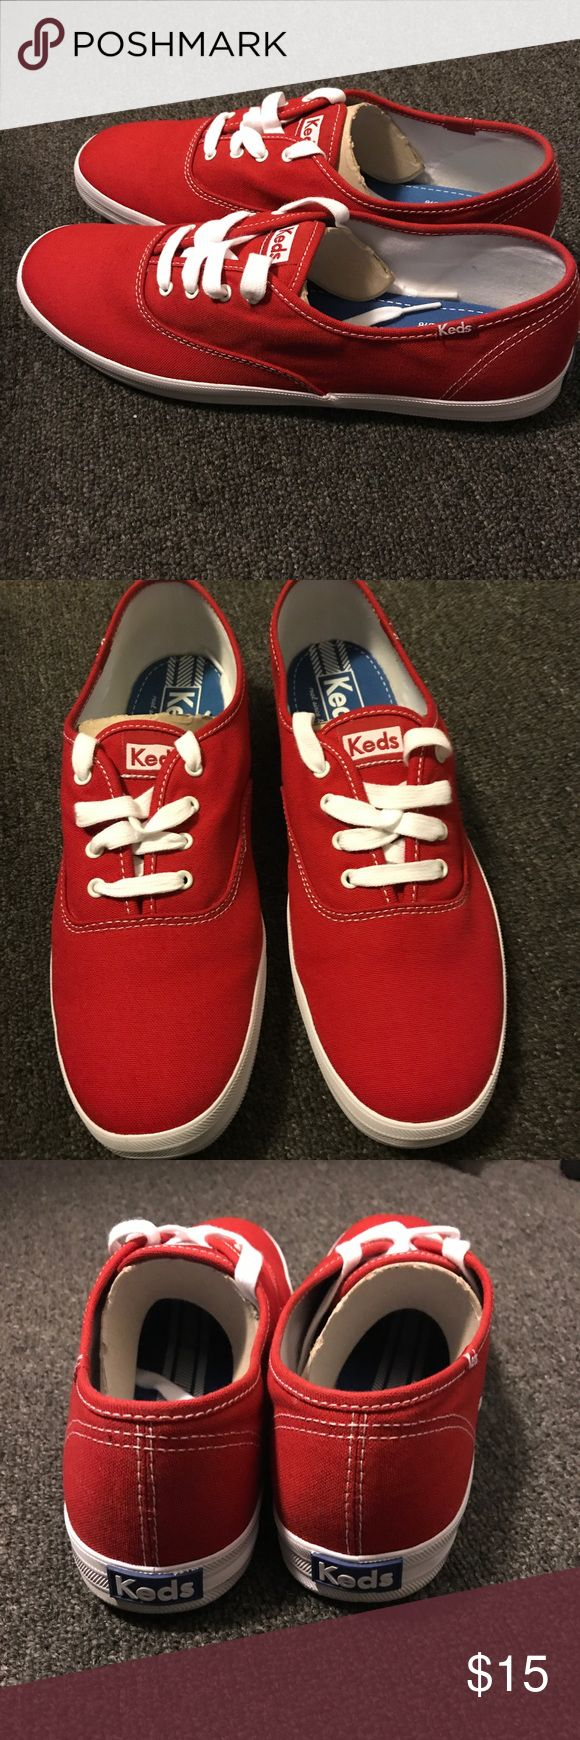 Keds canvas shoes Worn once new Keds size 11 Shoes